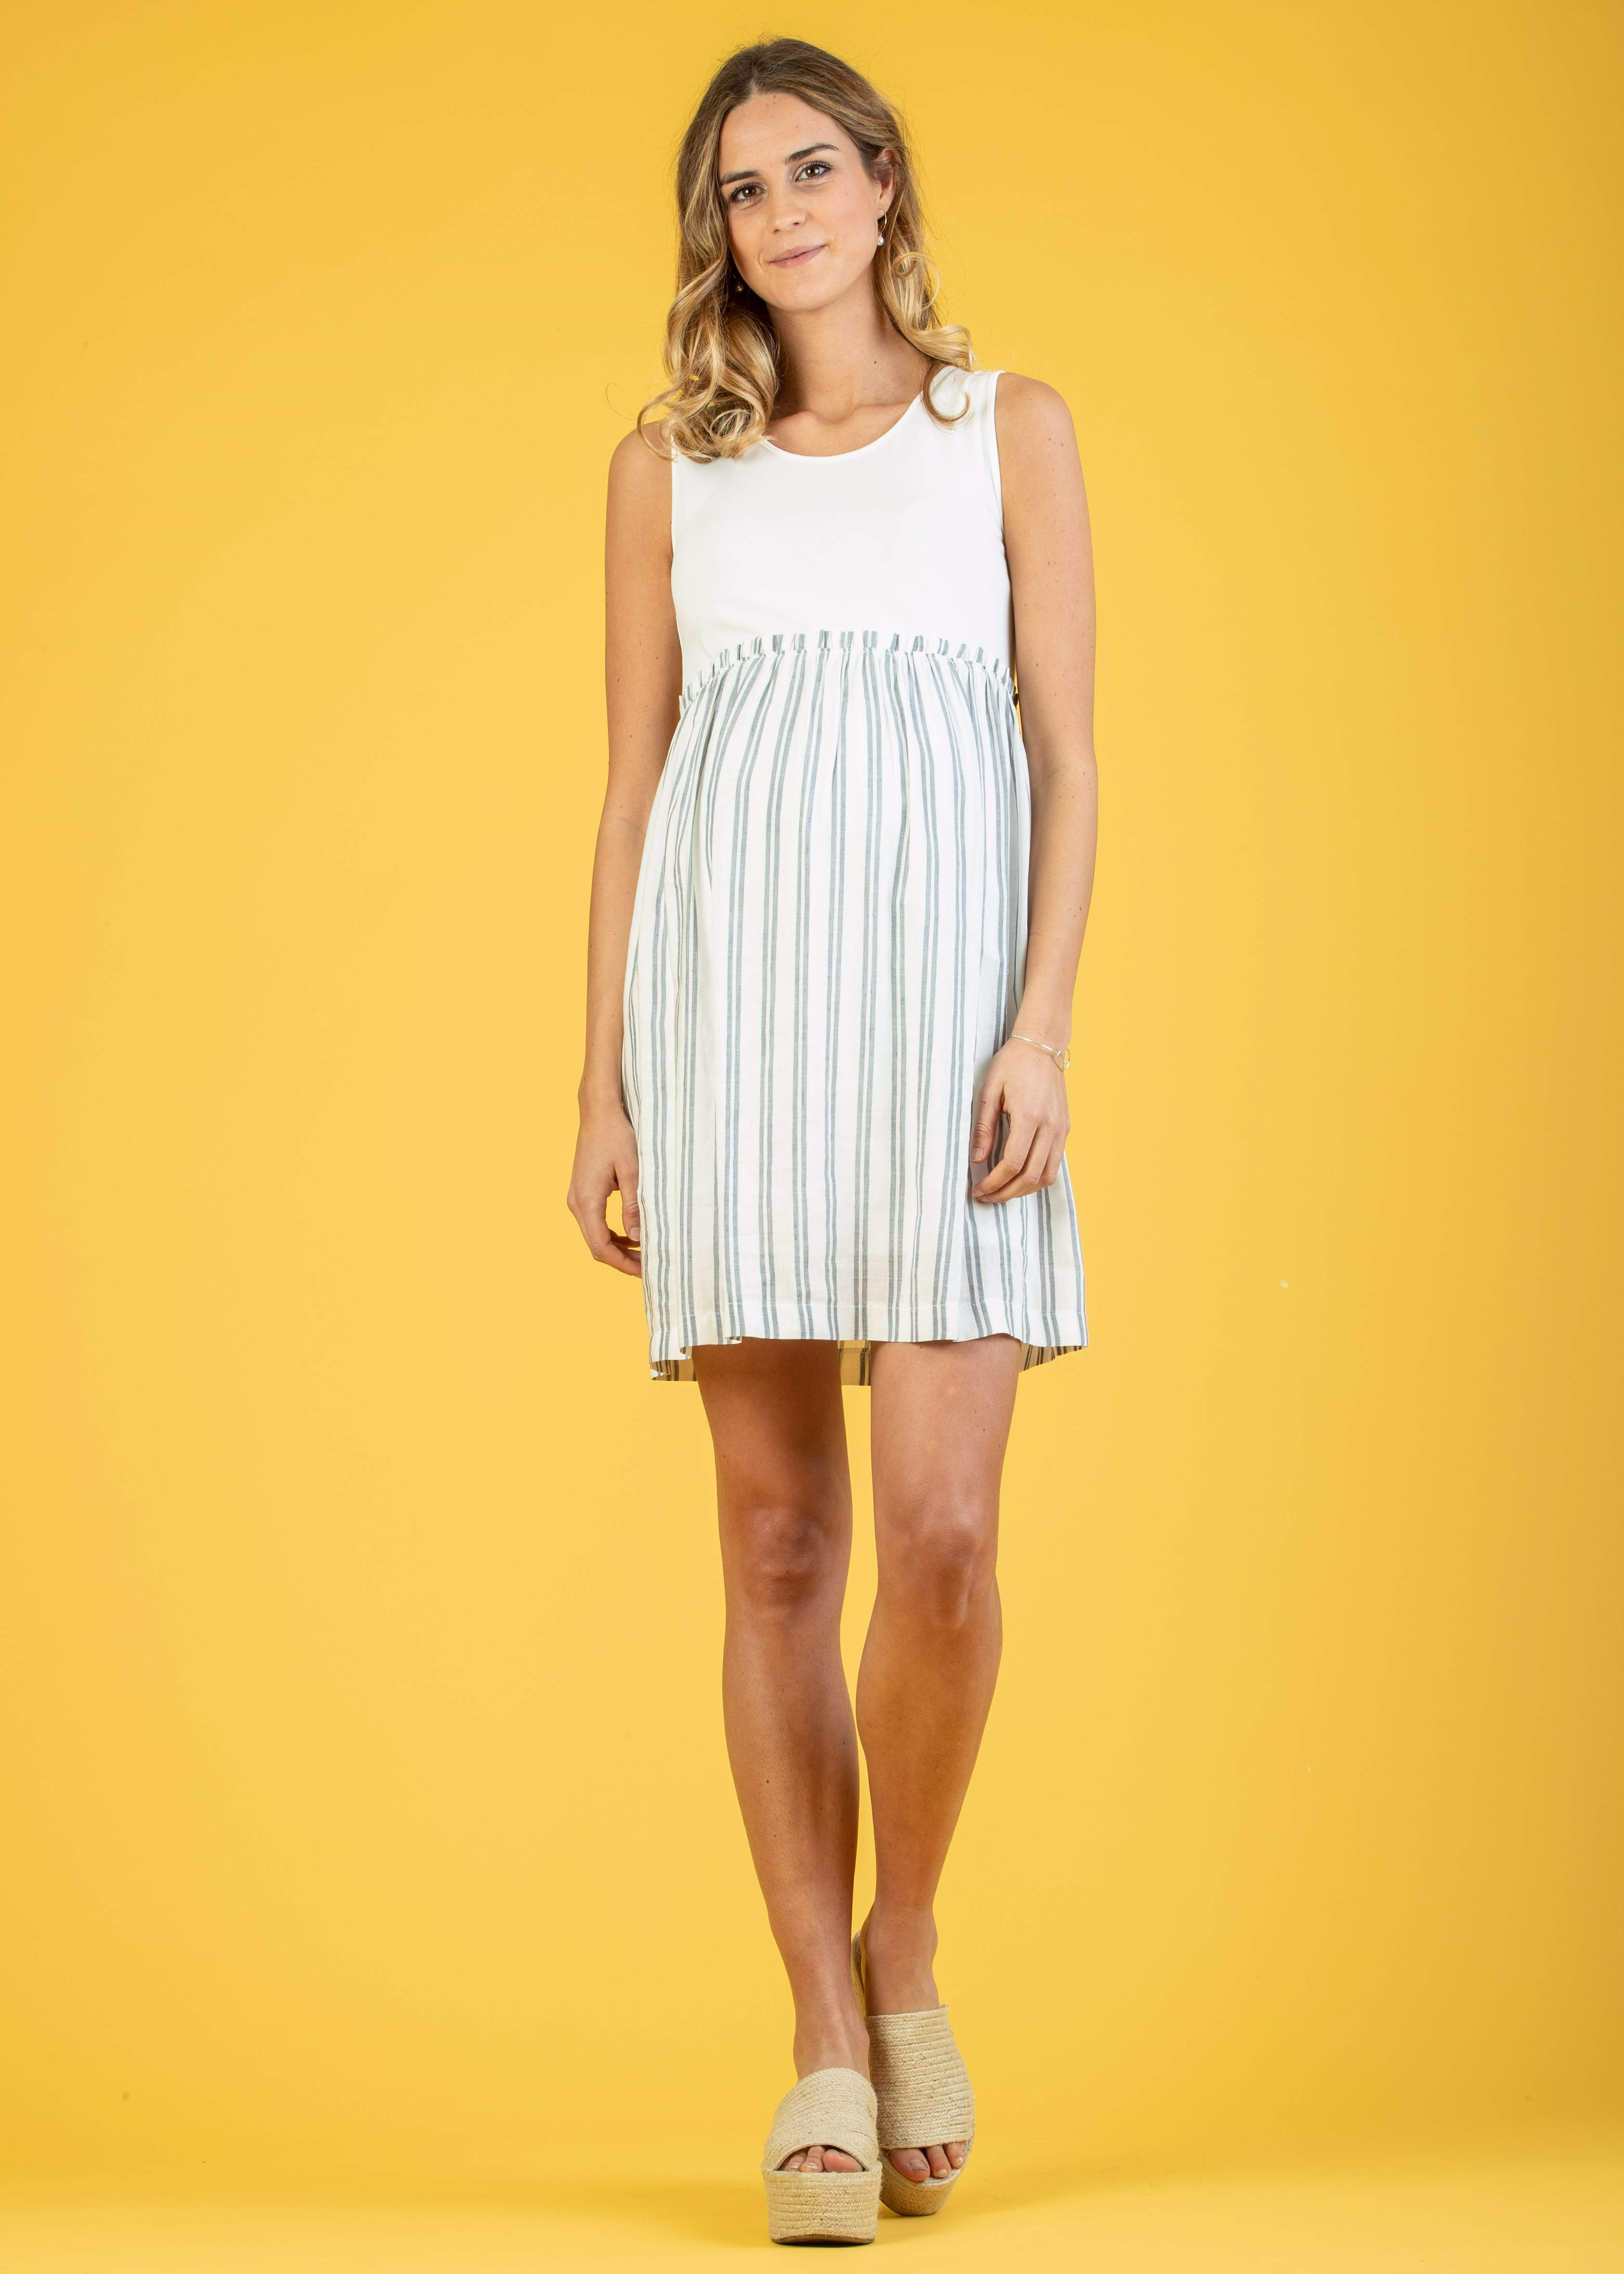 5fb04d229a803 Dresses - A-line Maternity Dress with Striped Skirt | Attesa Maternity